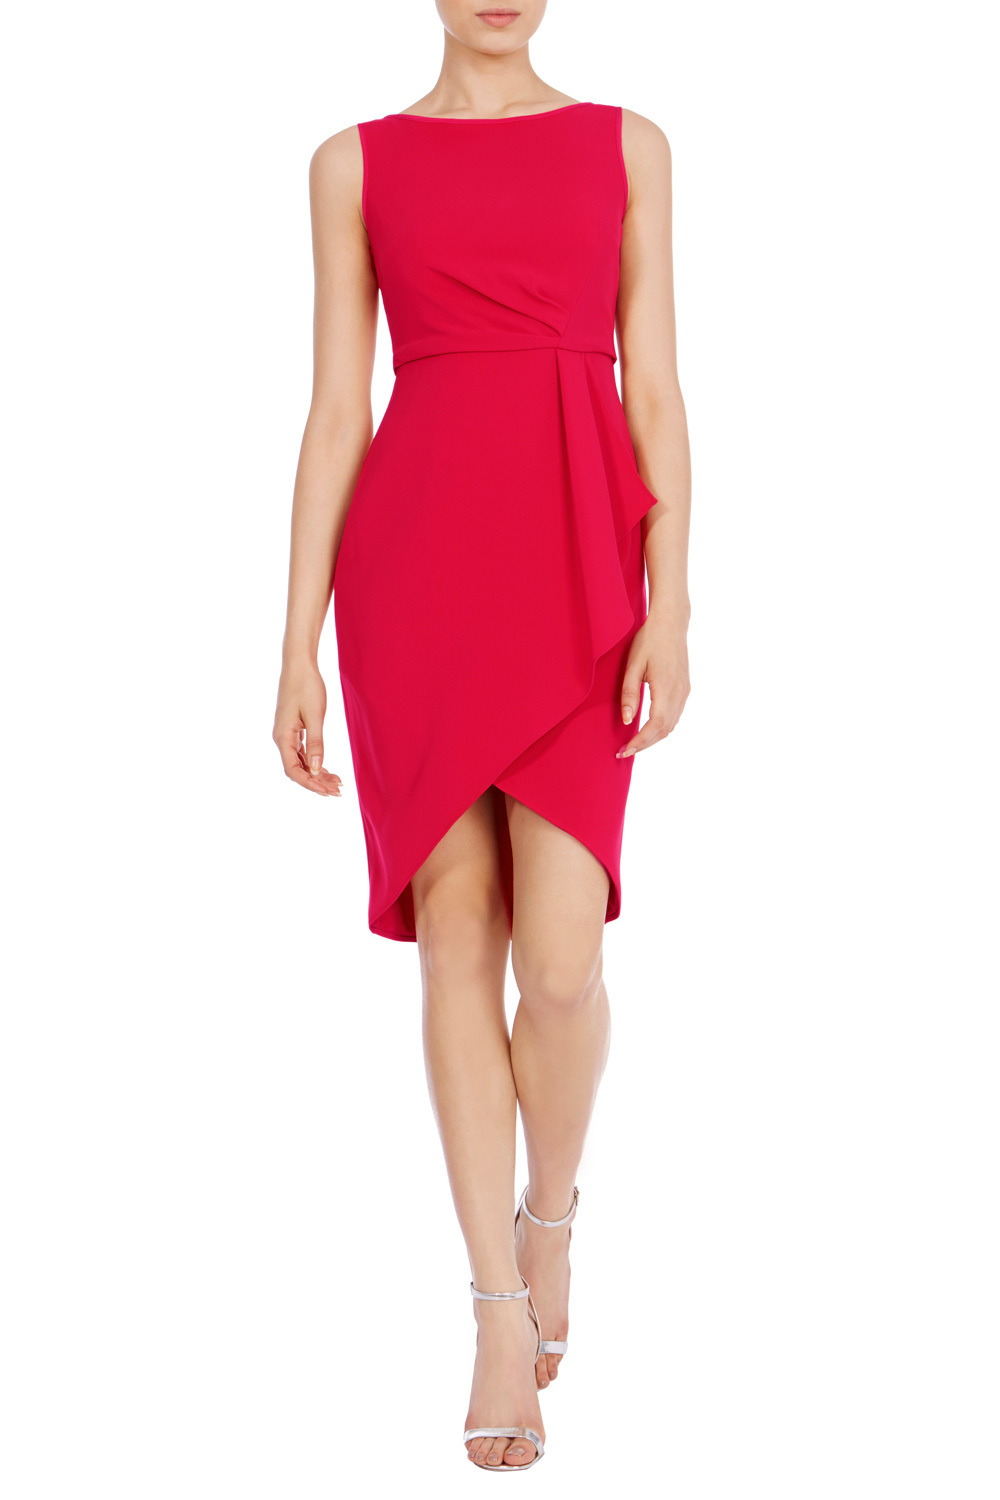 Drew Crepe Dress - style: shift; neckline: slash/boat neckline; fit: tailored/fitted; pattern: plain; sleeve style: sleeveless; predominant colour: true red; occasions: evening; length: just above the knee; fibres: polyester/polyamide - mix; sleeve length: sleeveless; pattern type: fabric; texture group: other - light to midweight; season: a/w 2016; wardrobe: event